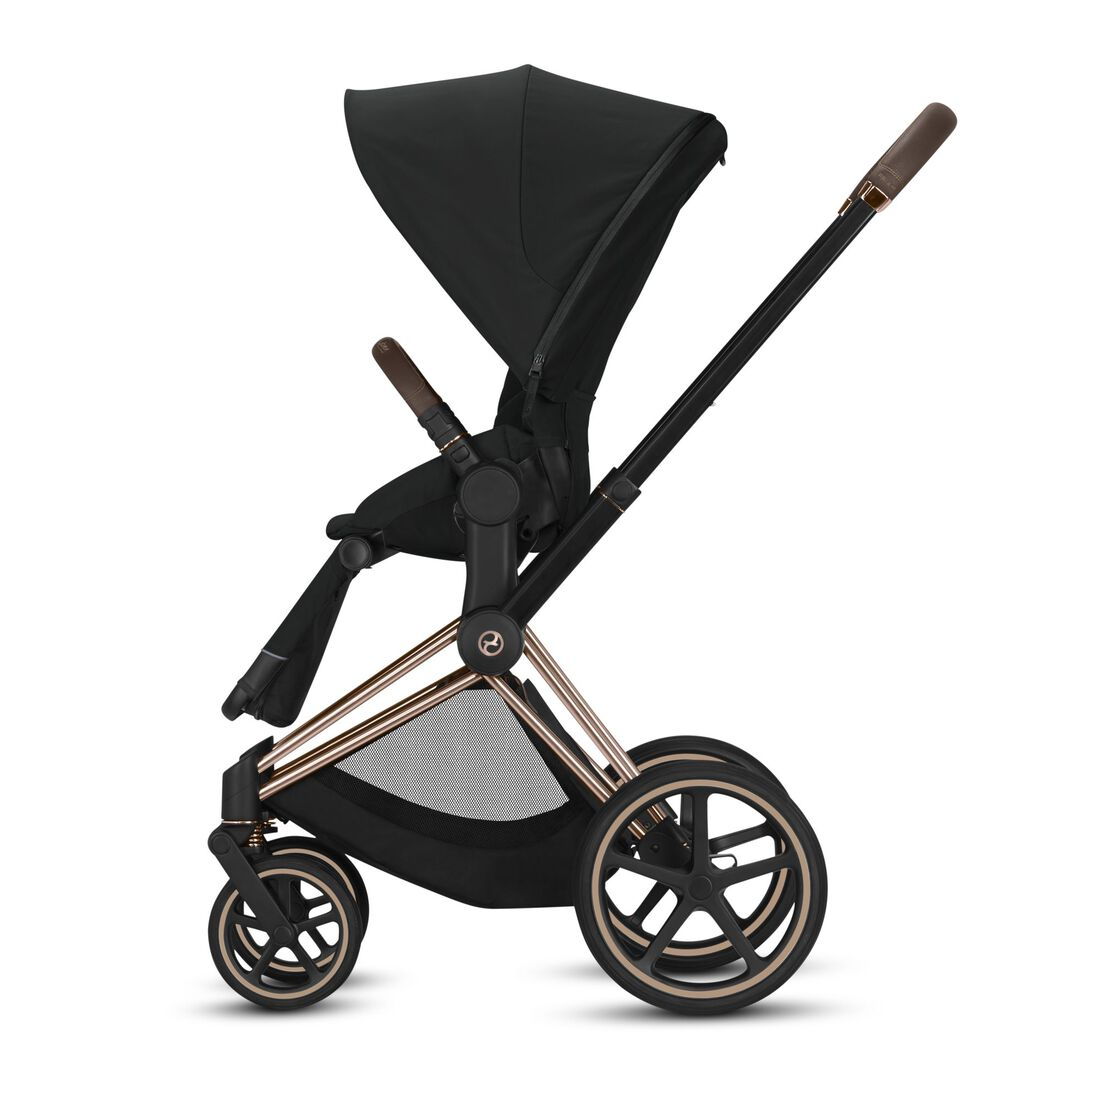 CYBEX Balios S 2-in-1 Pushchair - One-hand recline function into full-lie-flat position